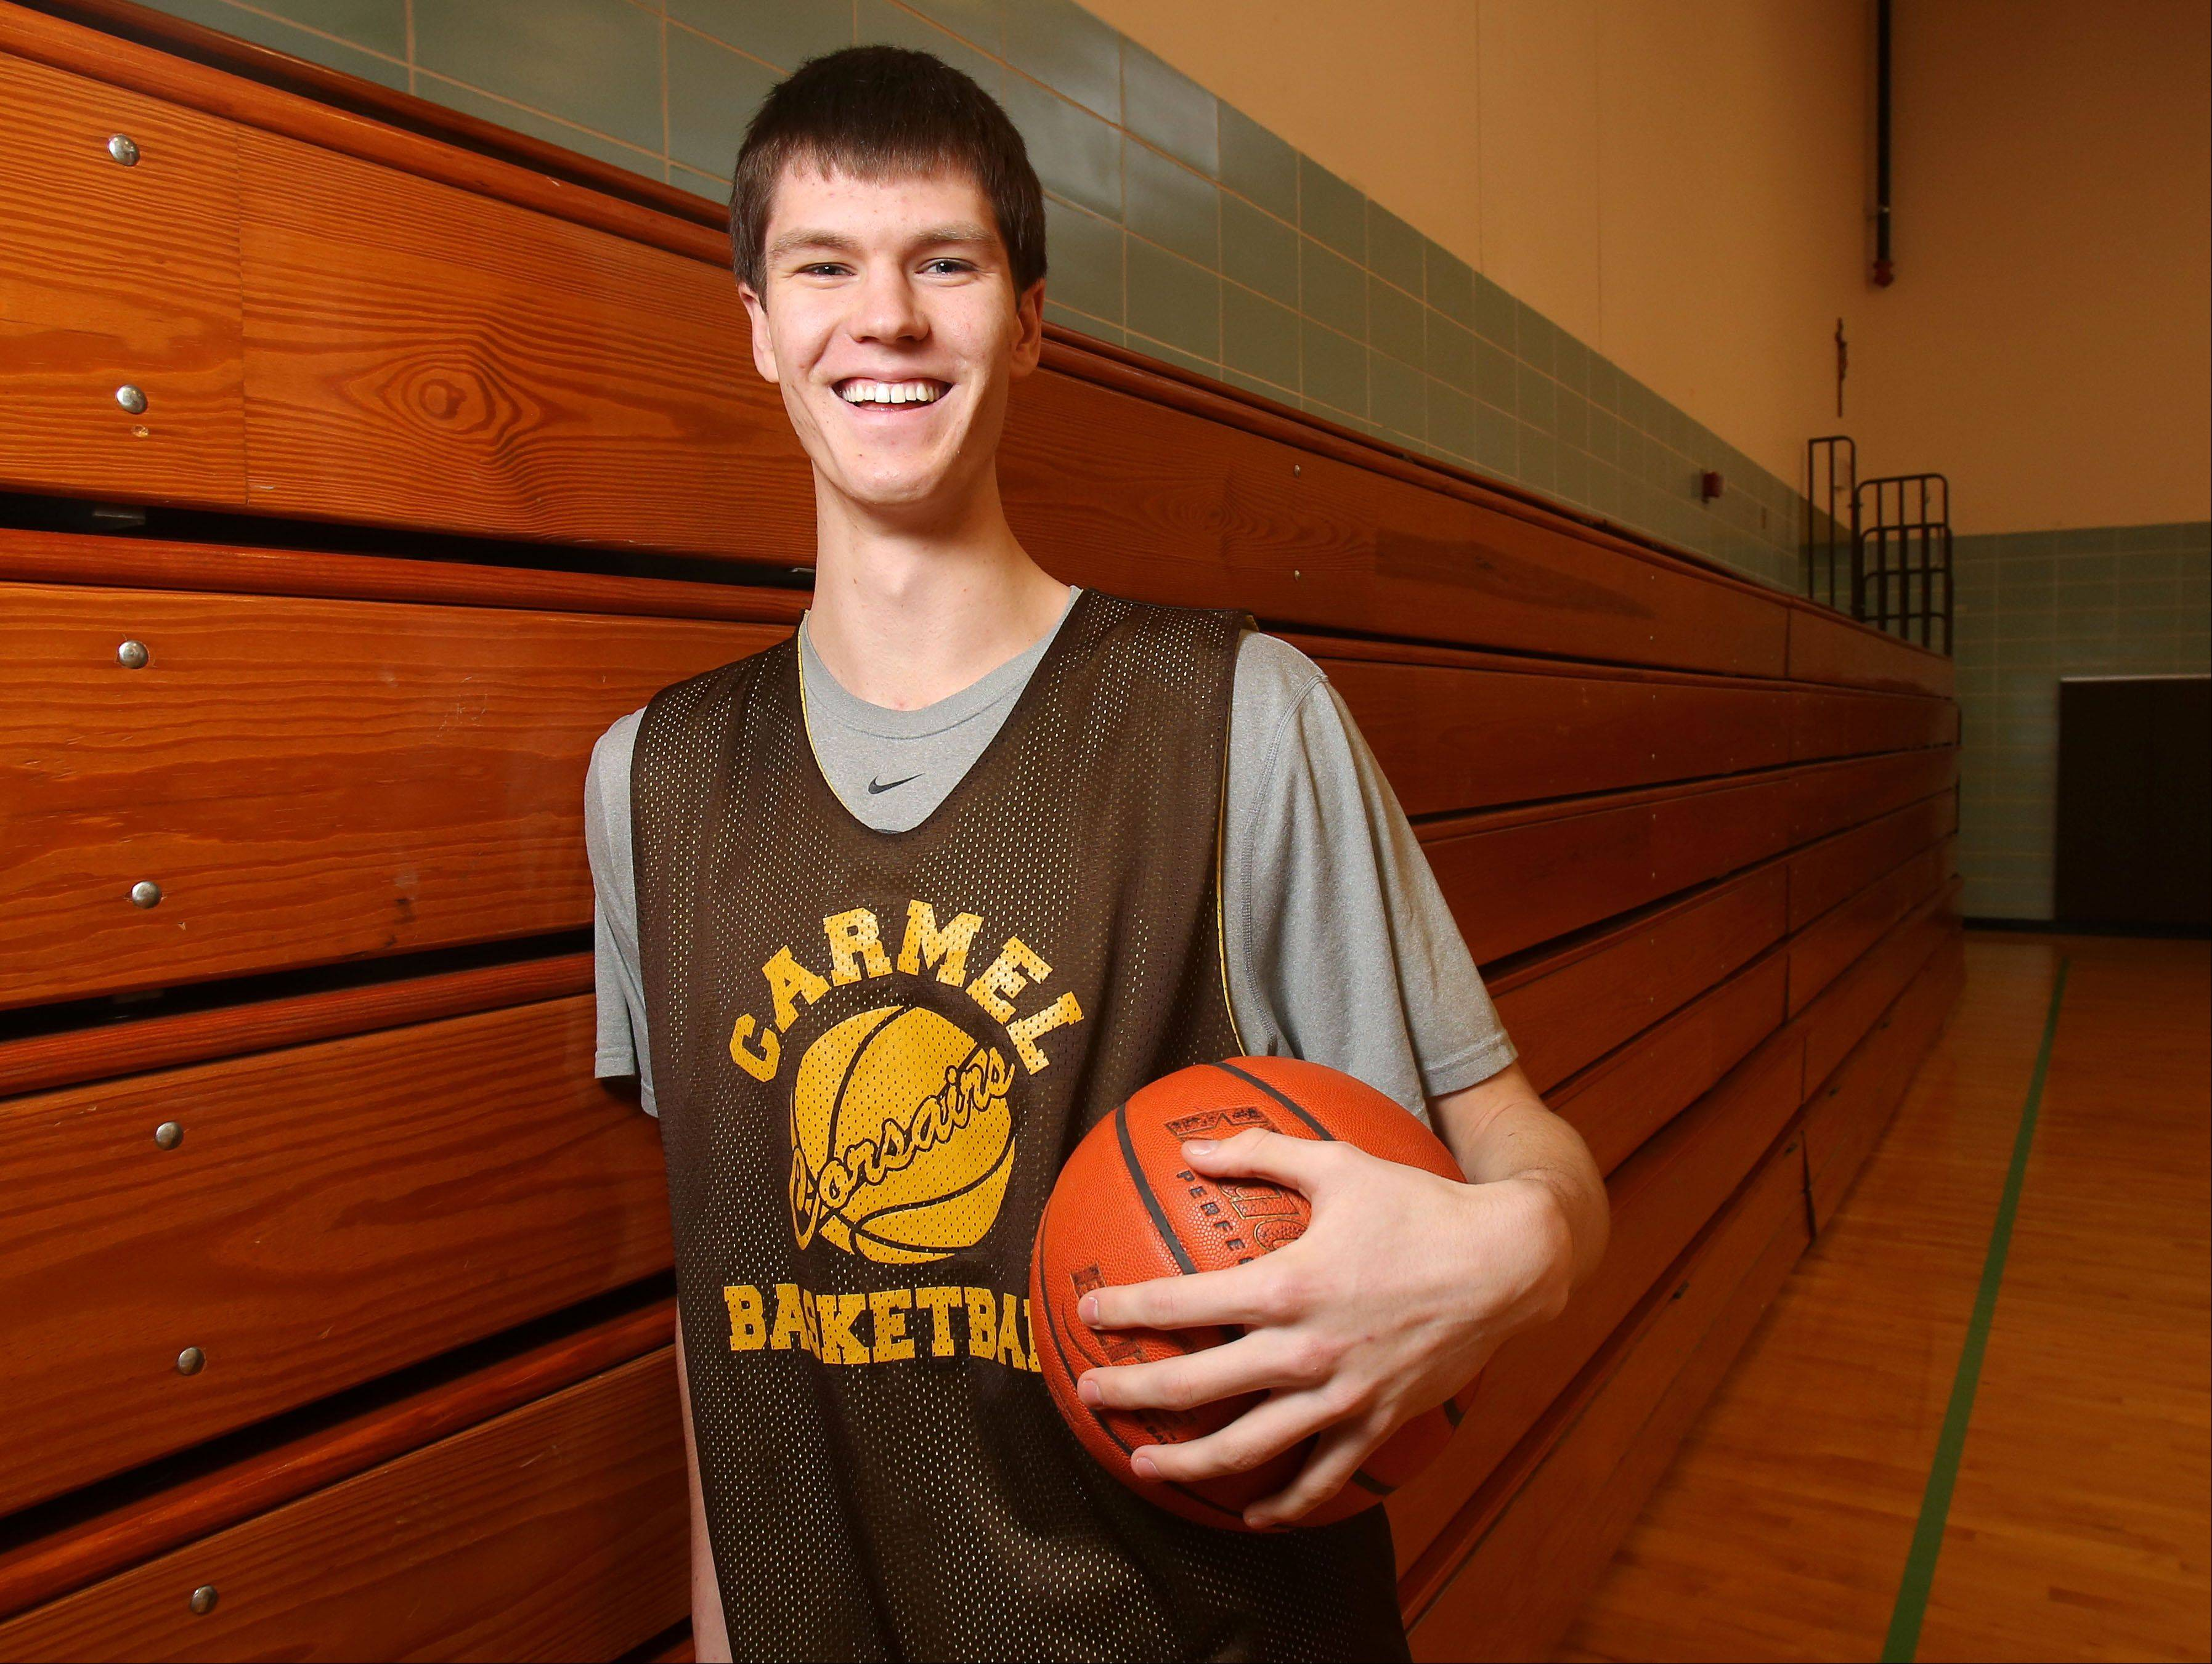 Carmel's 6-foot-10 center Jack George has helped Carmel to a 17-3 record and one of its best seasons in years.